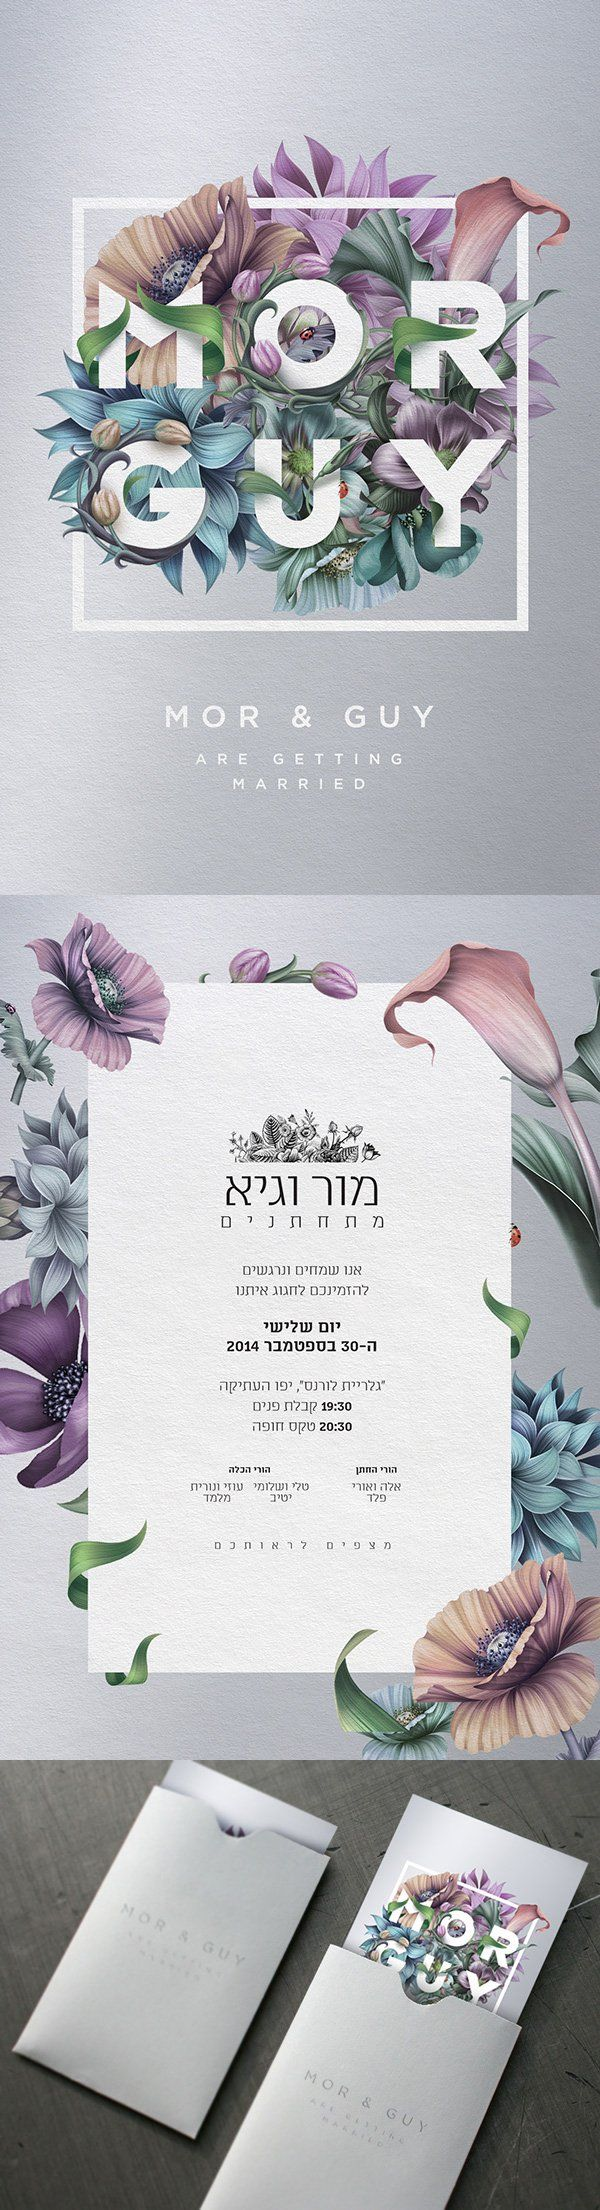 A showcase of beautifully designed print invitations to inspire